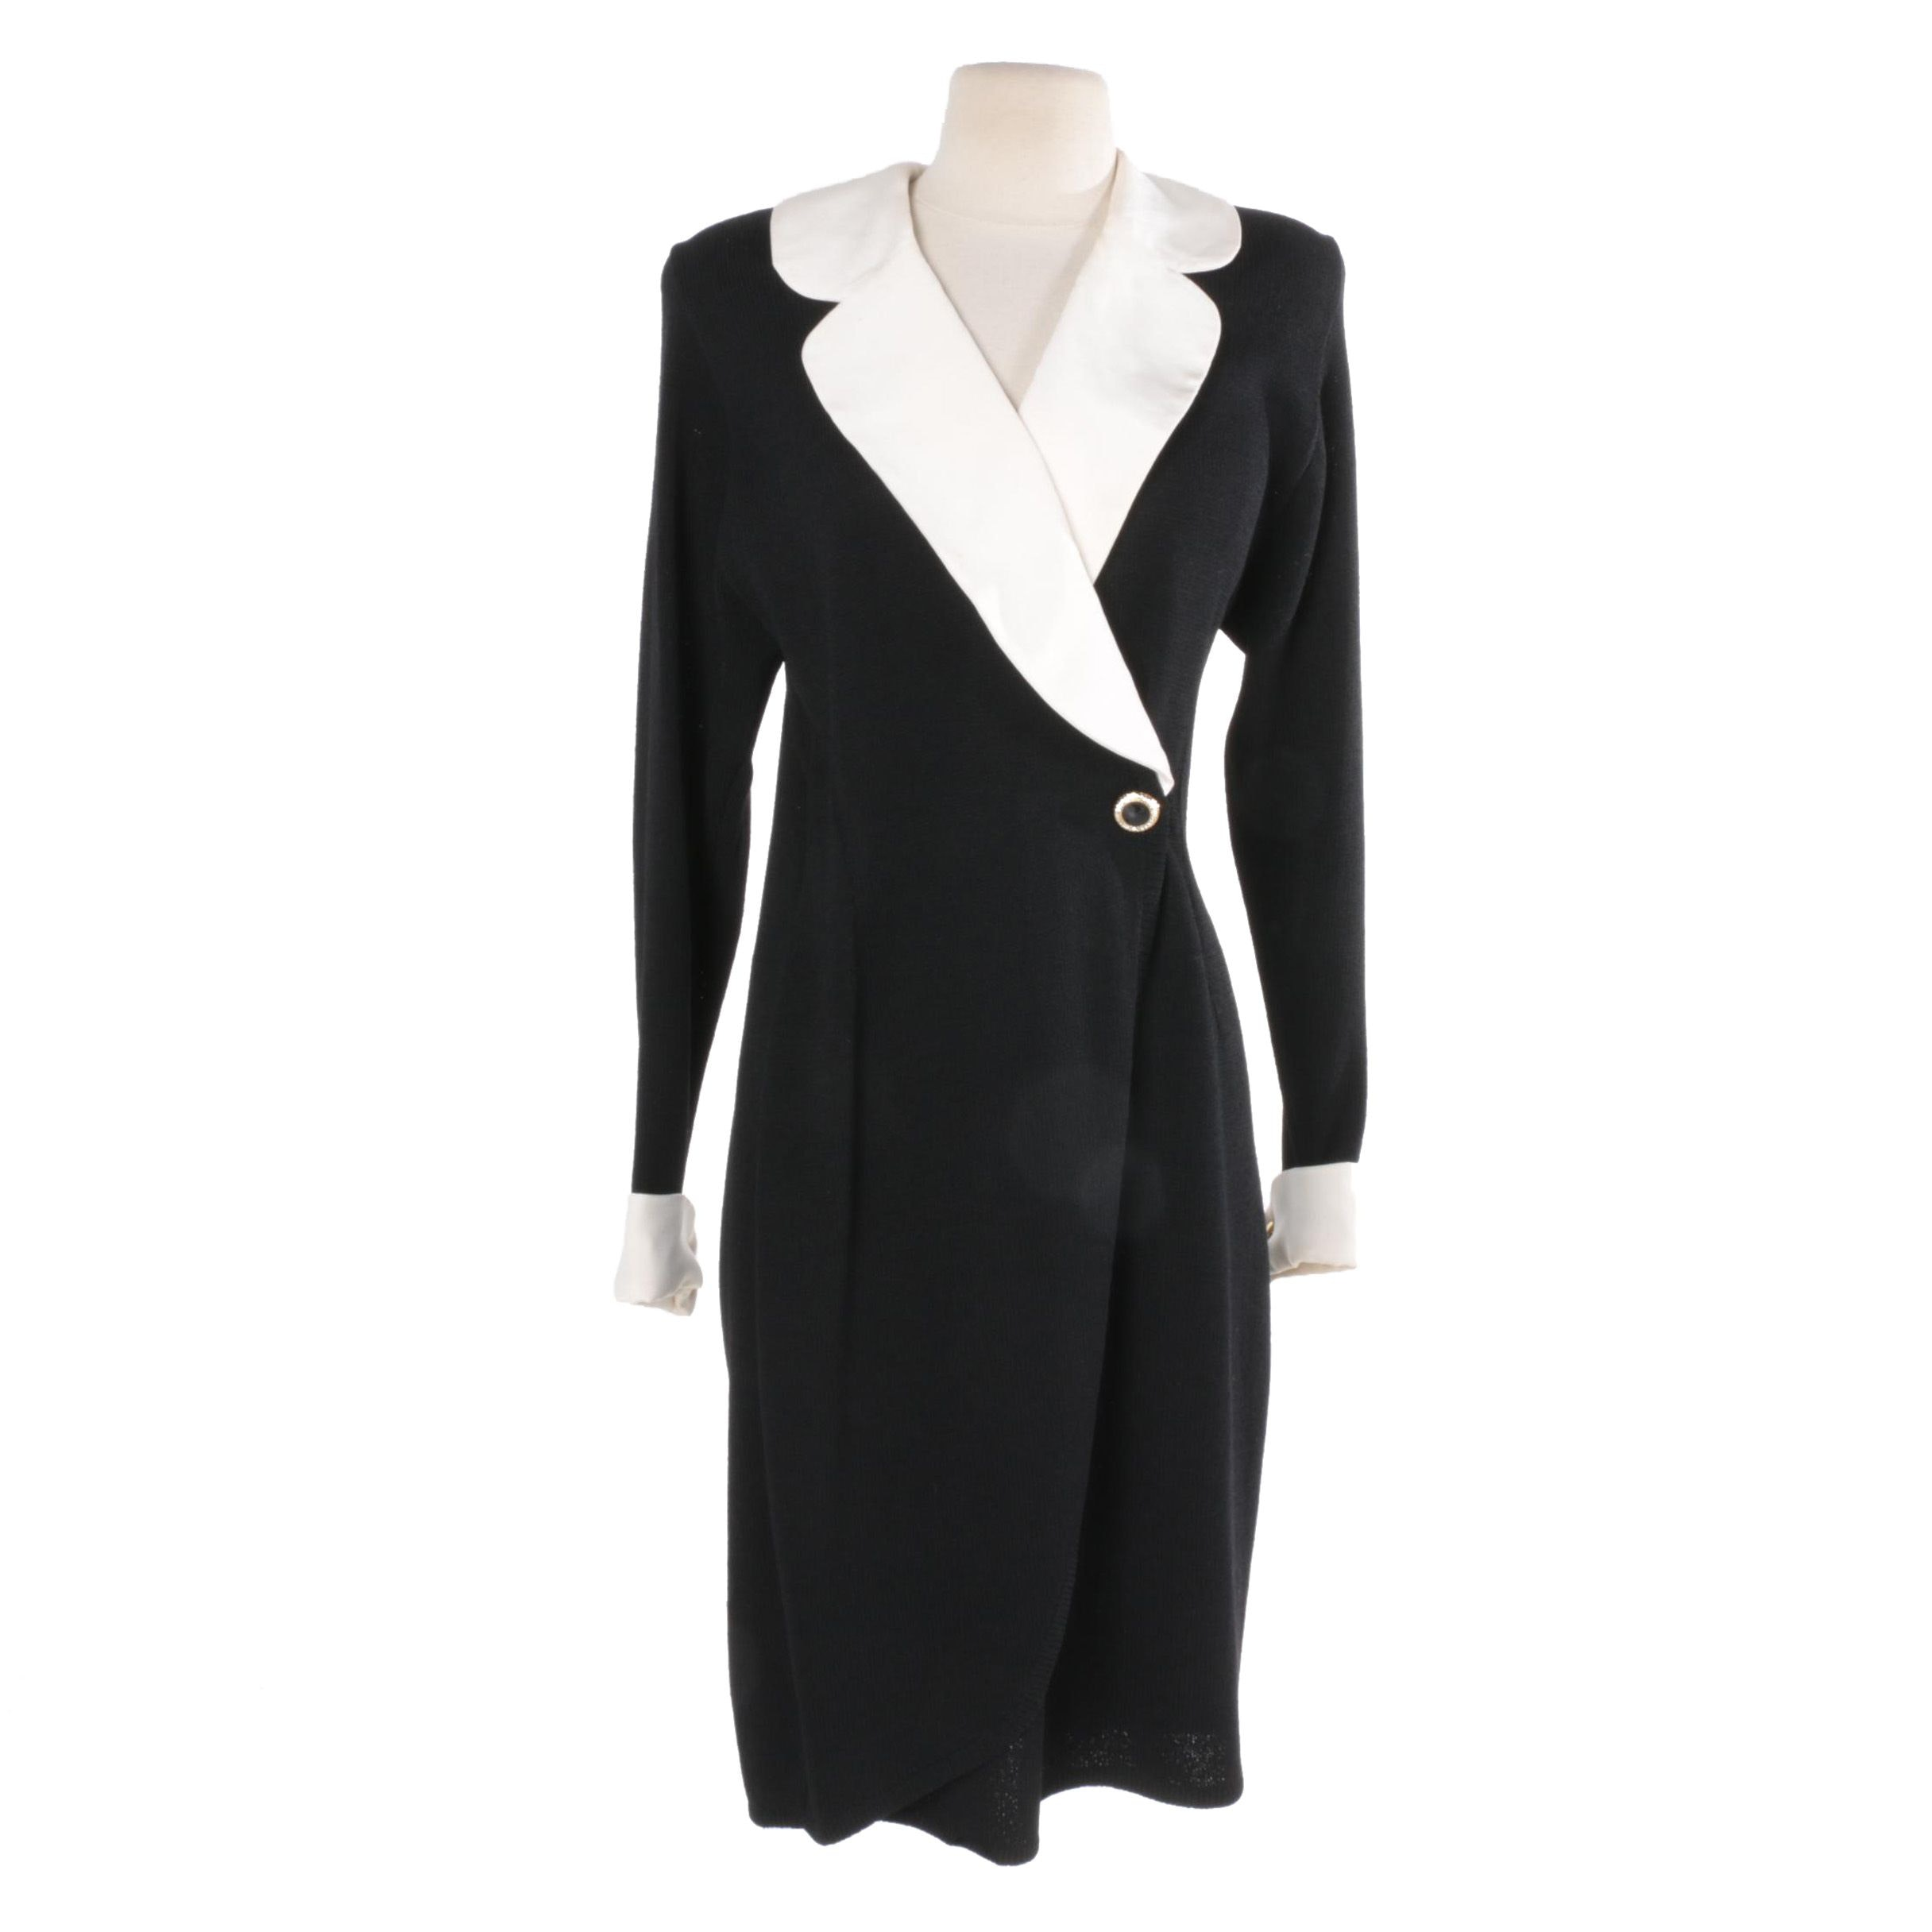 Women's St. John Knit Dress